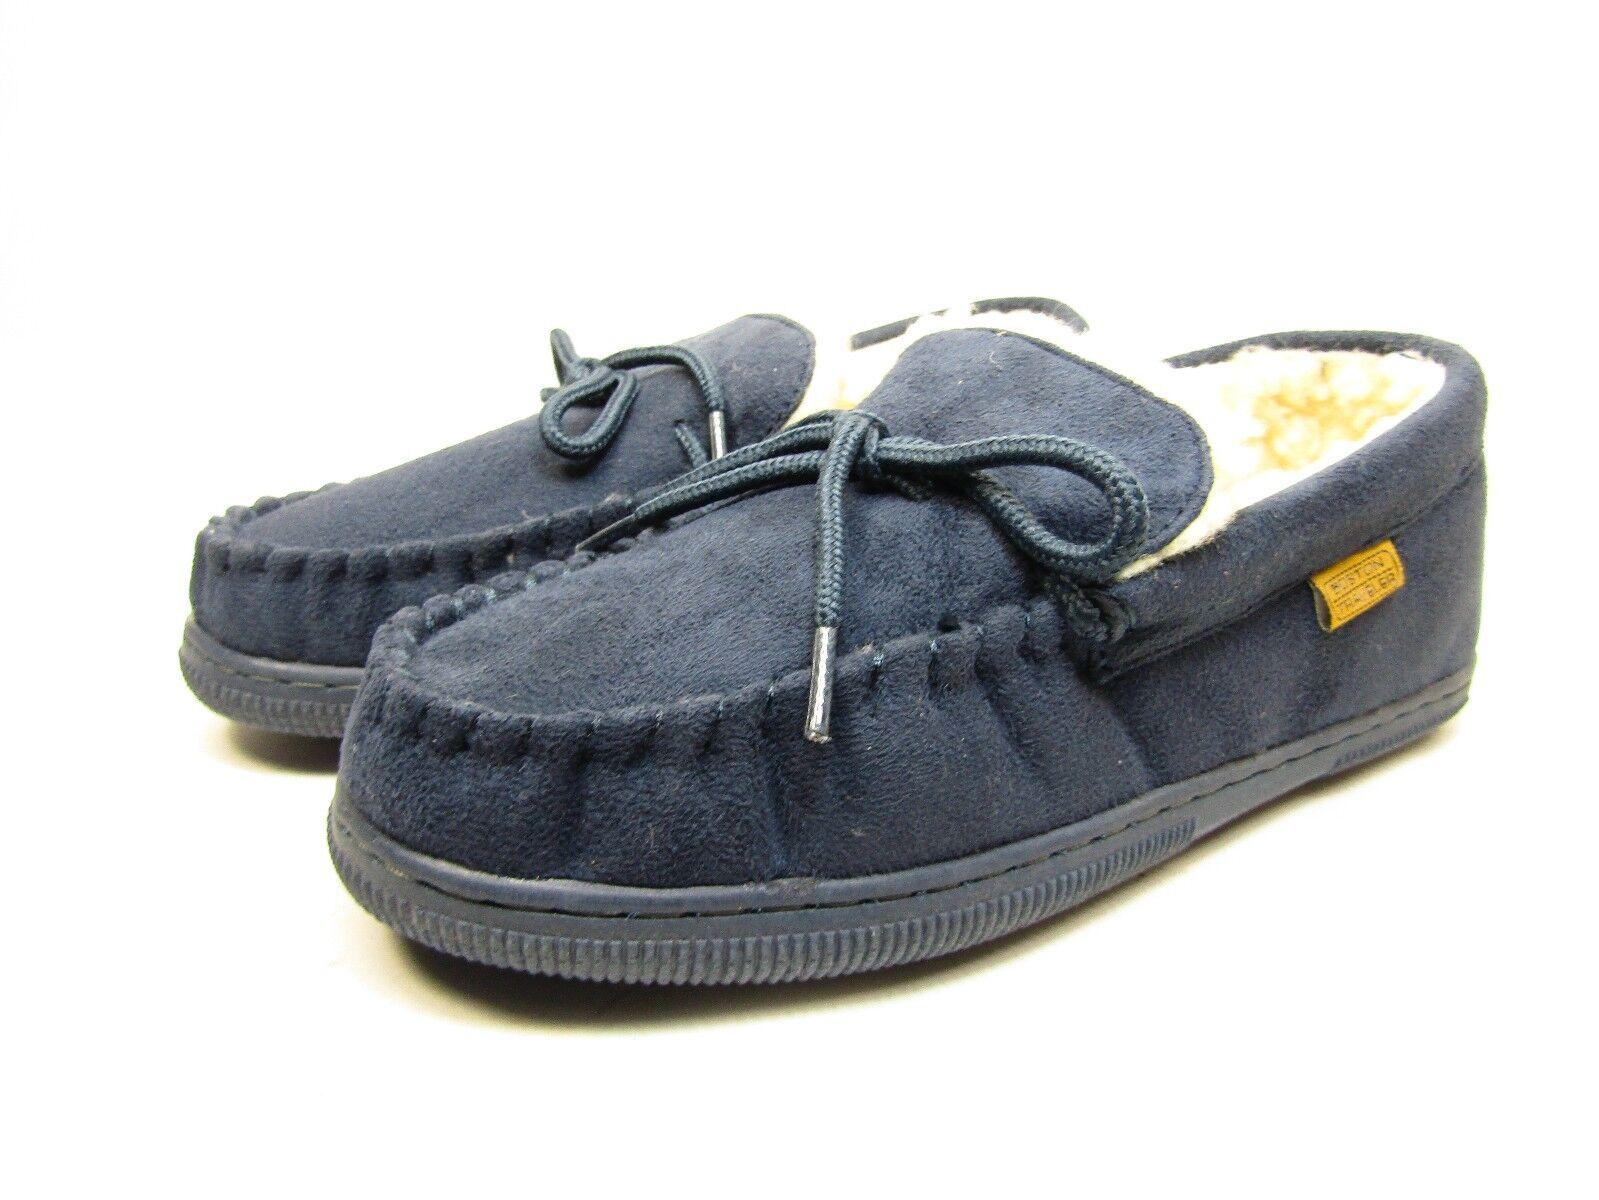 Boston Traveler  Moccasin Slippers 212M Navy Size 11